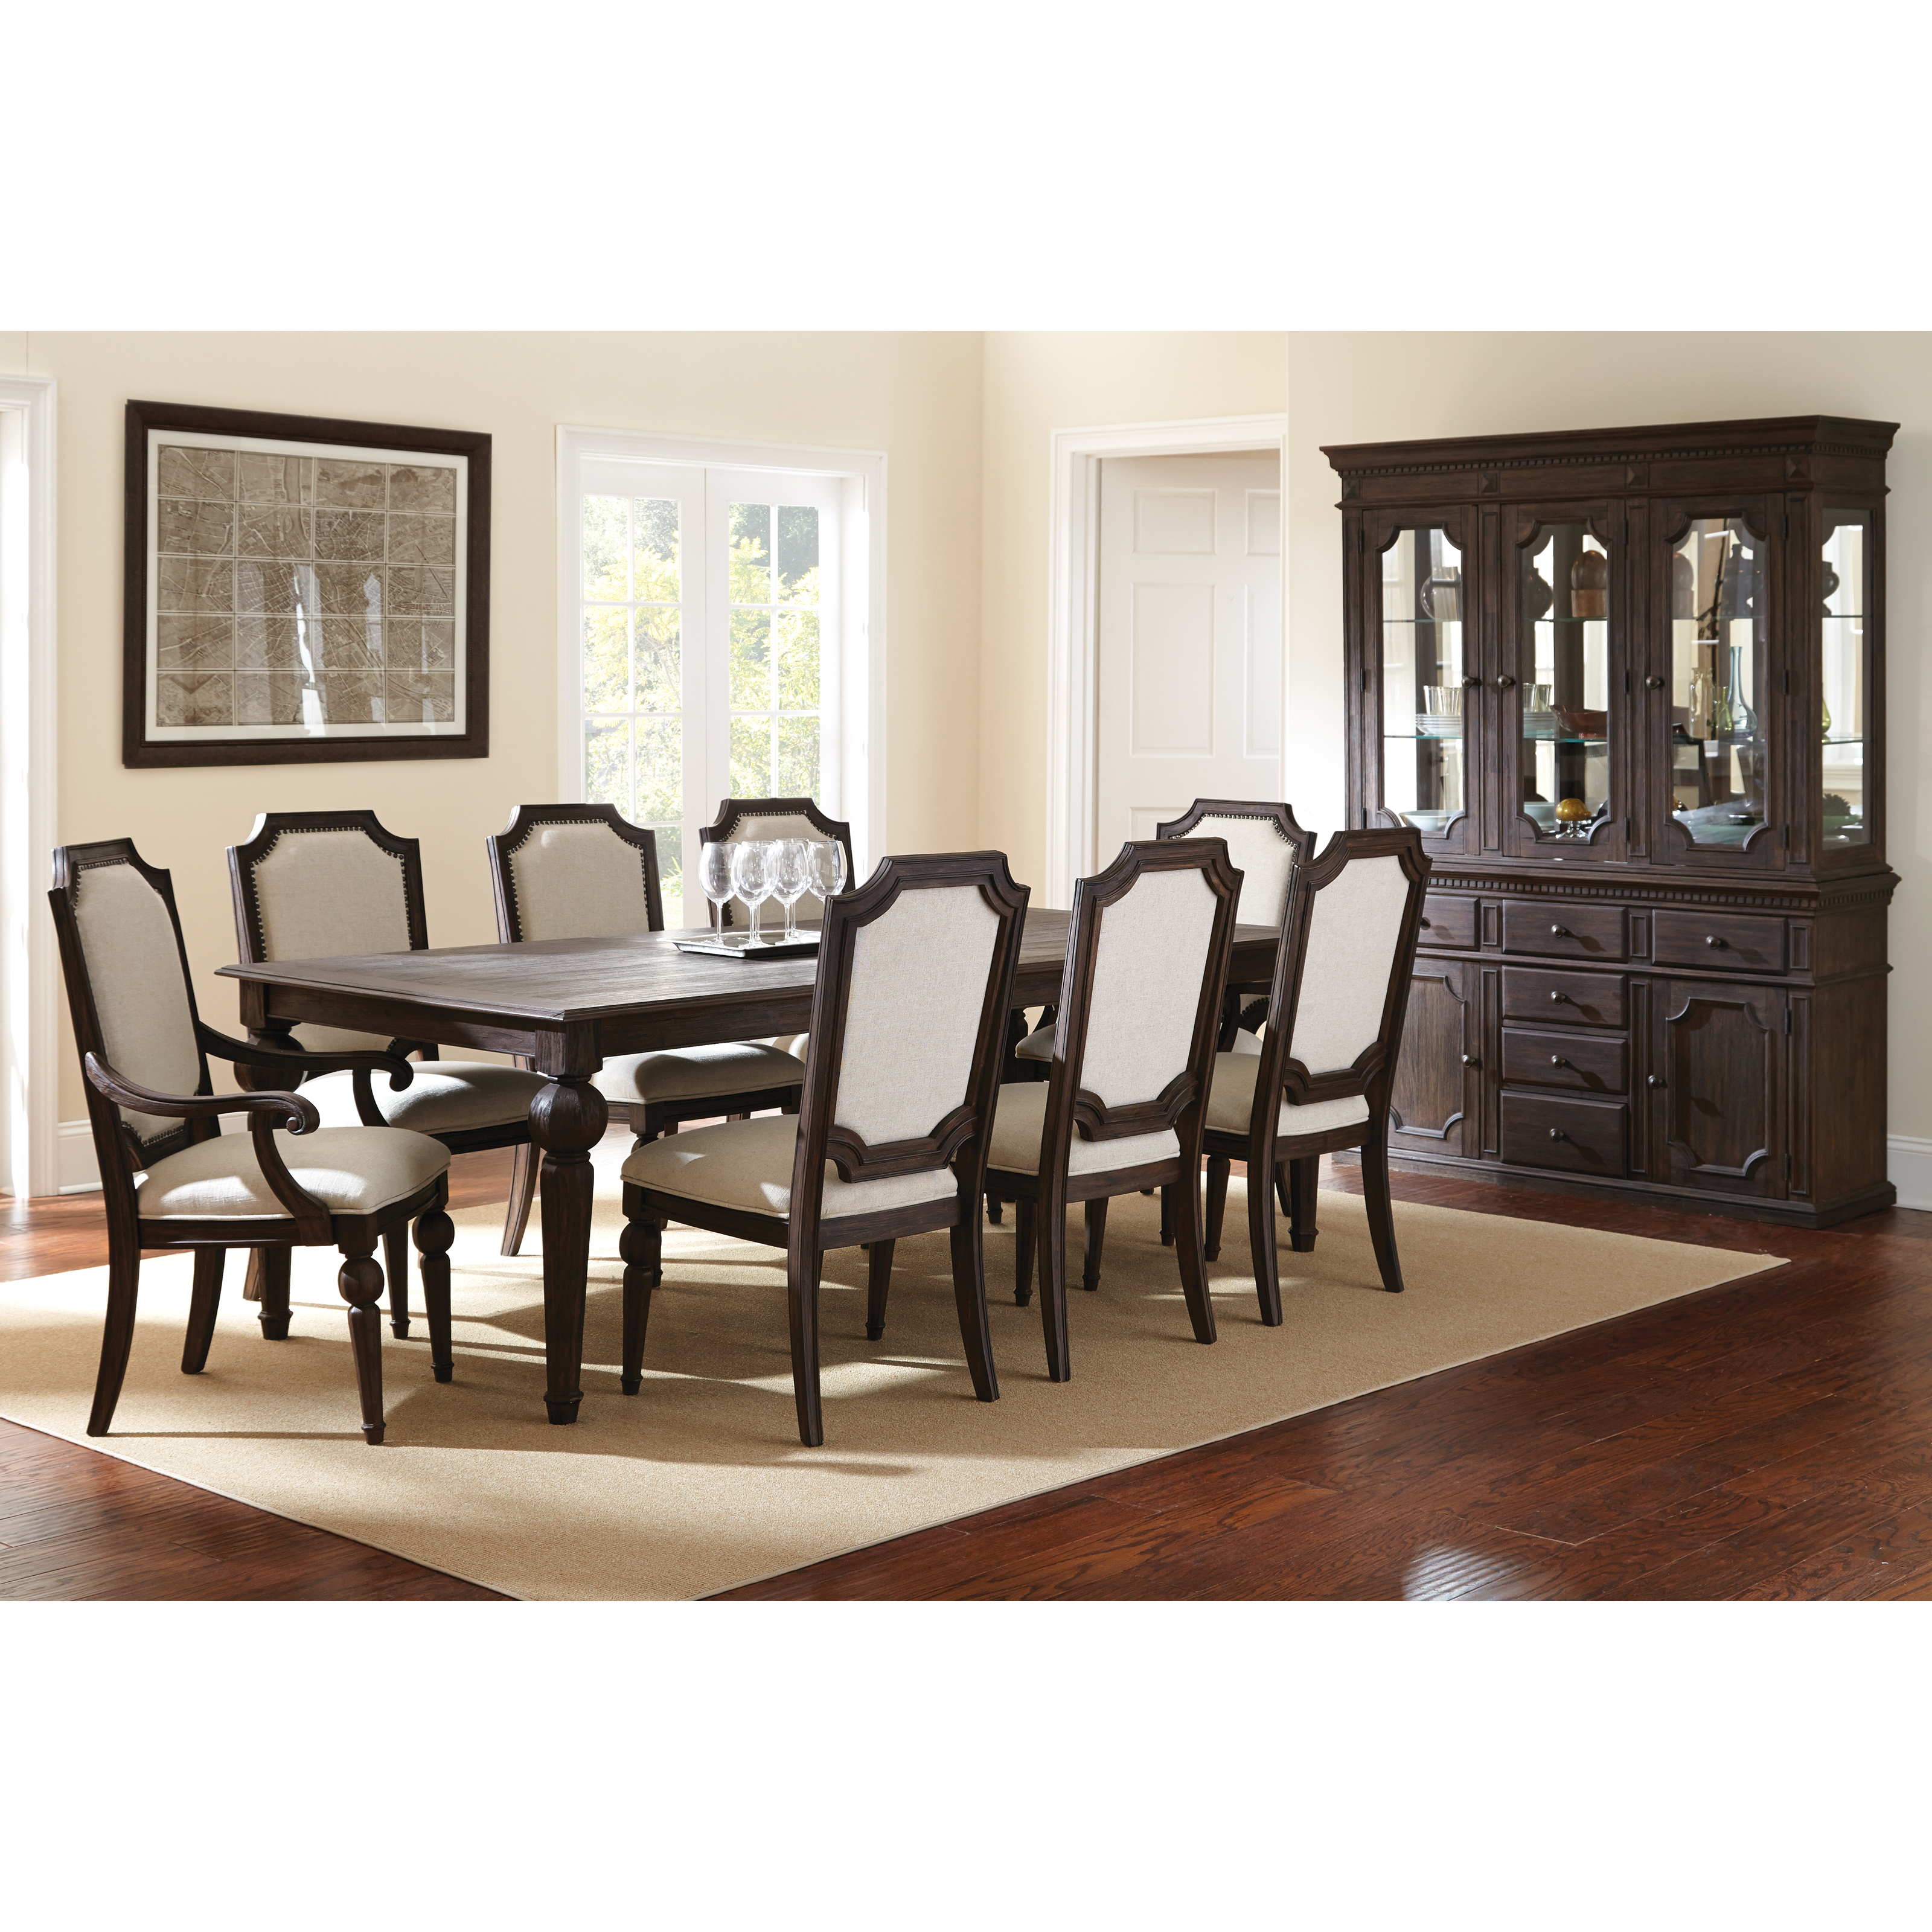 New dining room furniture dallas light of dining room Dining room furniture dallas